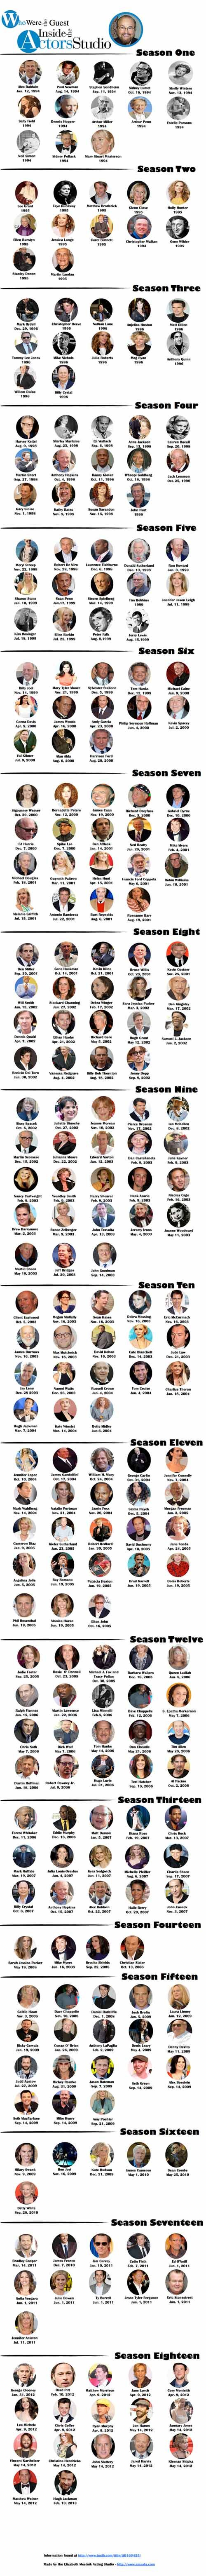 Here is Every Single Guest That Has Appeared On 'Inside the Actors Studio' (Infographic) - Daily Actor